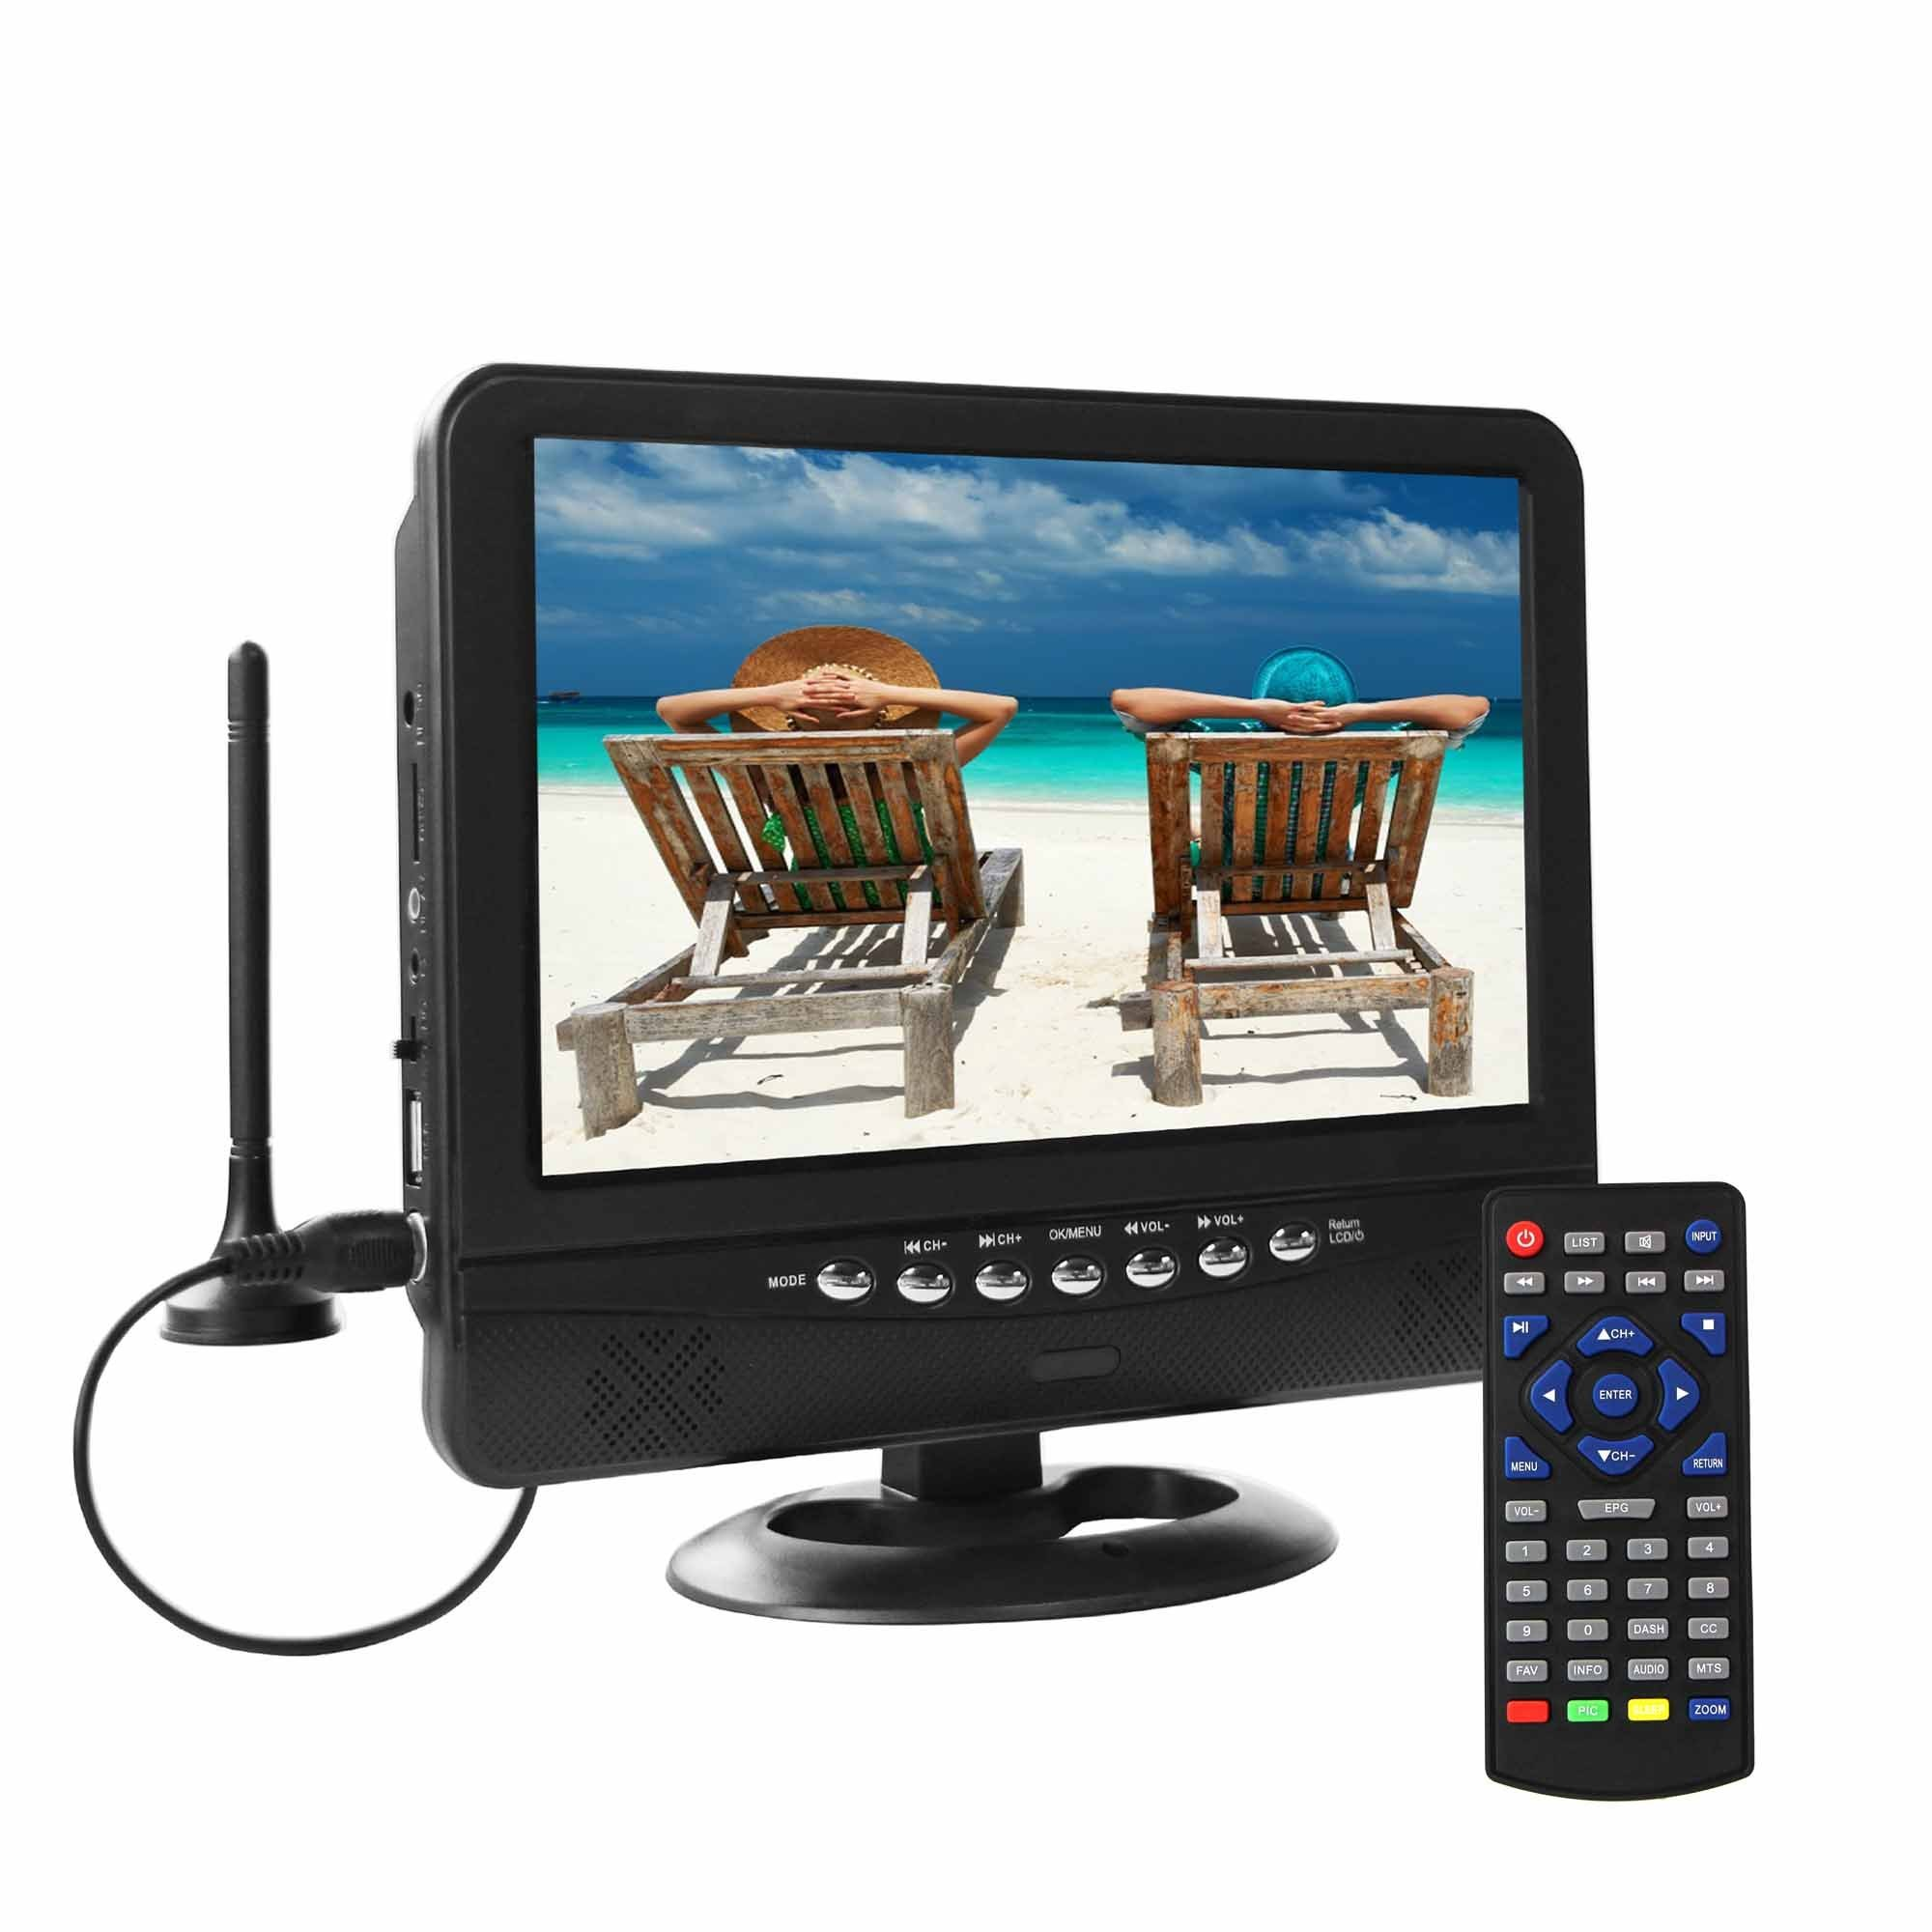 GJY 9-Inch Portable Widescreen TV Built in Digital Tuner+NTSC,USB//TF Card Slot//Headphone Inputs,with Detachable Antennas,Automotive Mobile TV,Full Function Remote,Removable Bracket